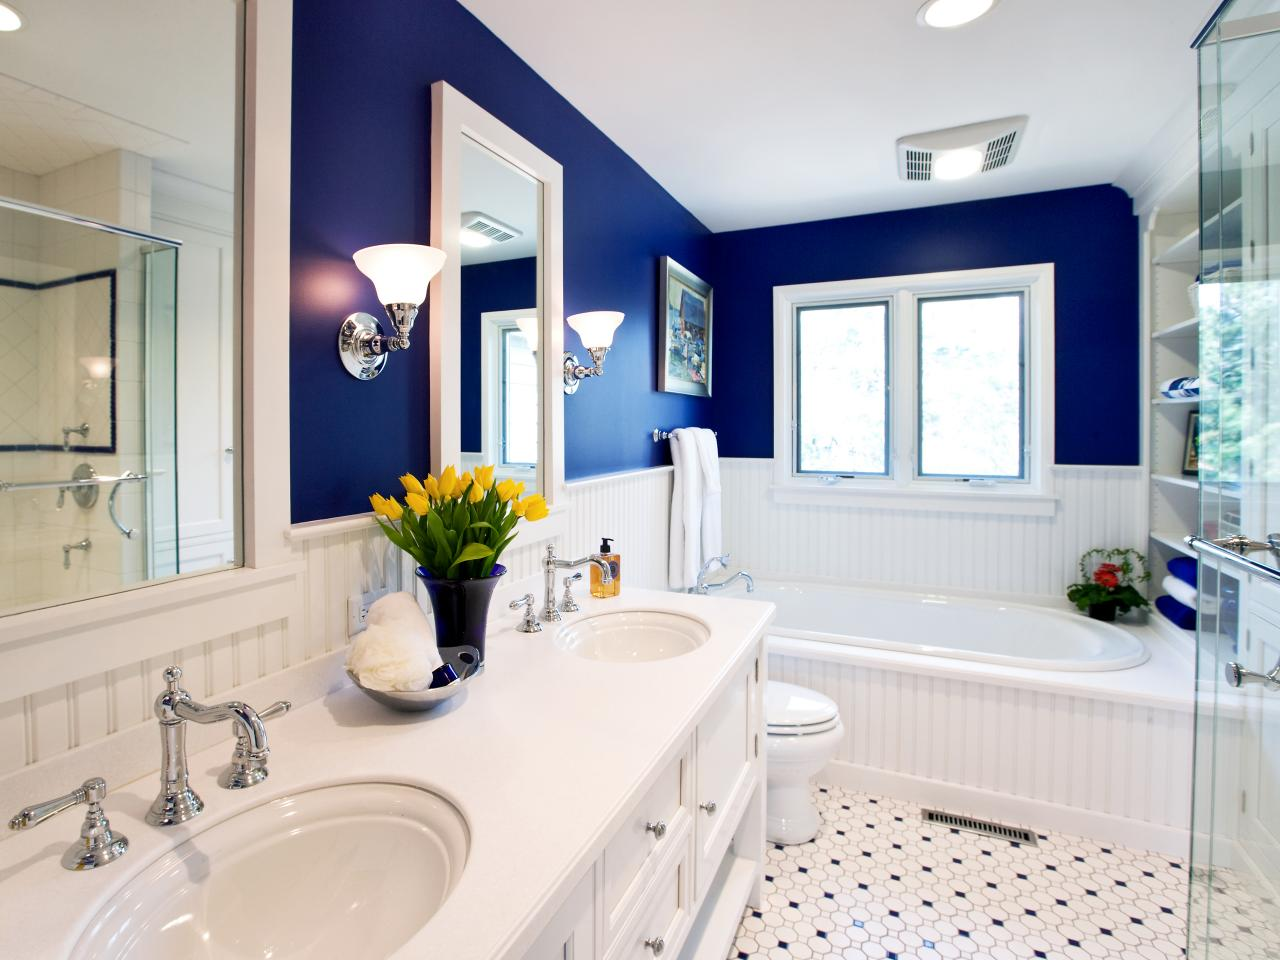 Bathroom Decorating Ideas Blue pink bathroom decor ideas: pictures & tips from hgtv | hgtv